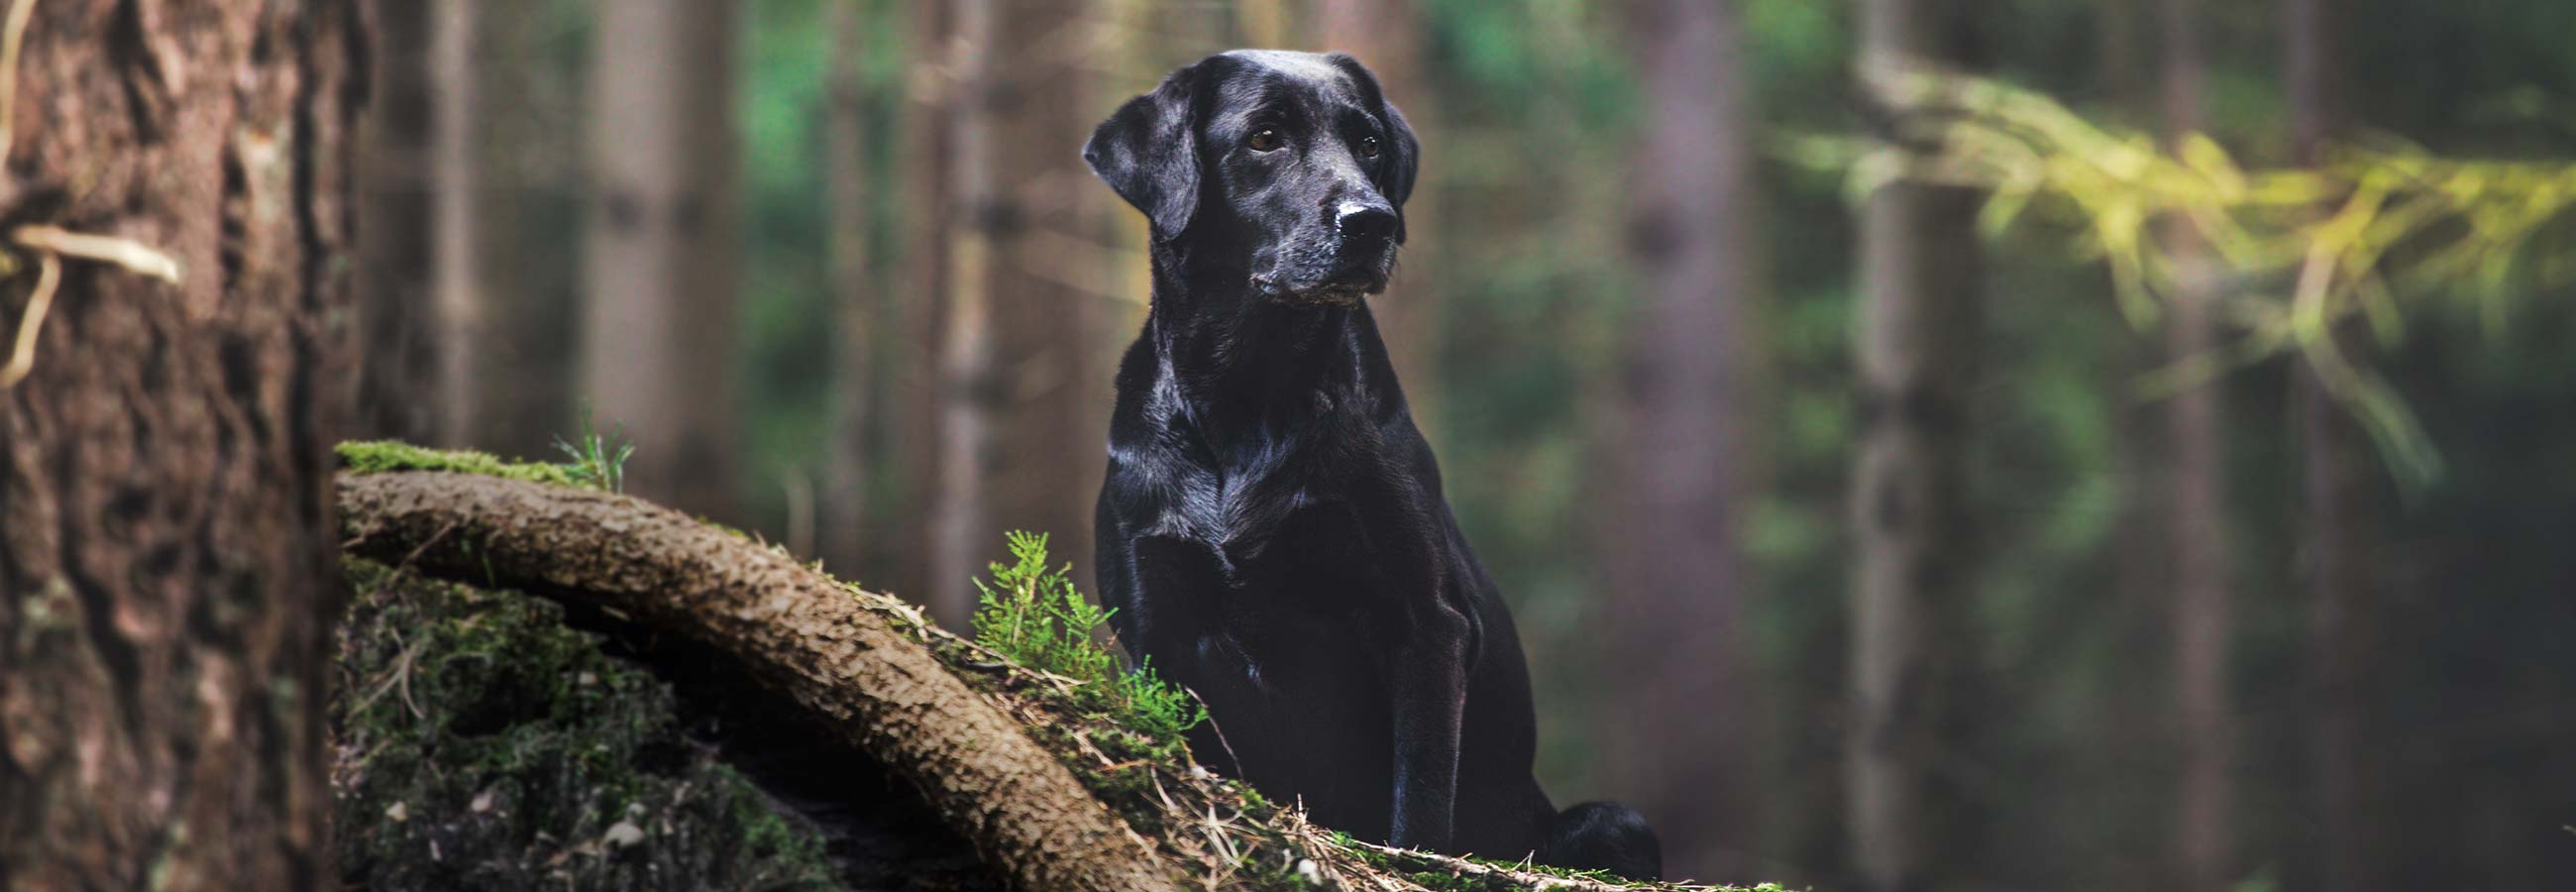 Shiny black lab sitting in forest